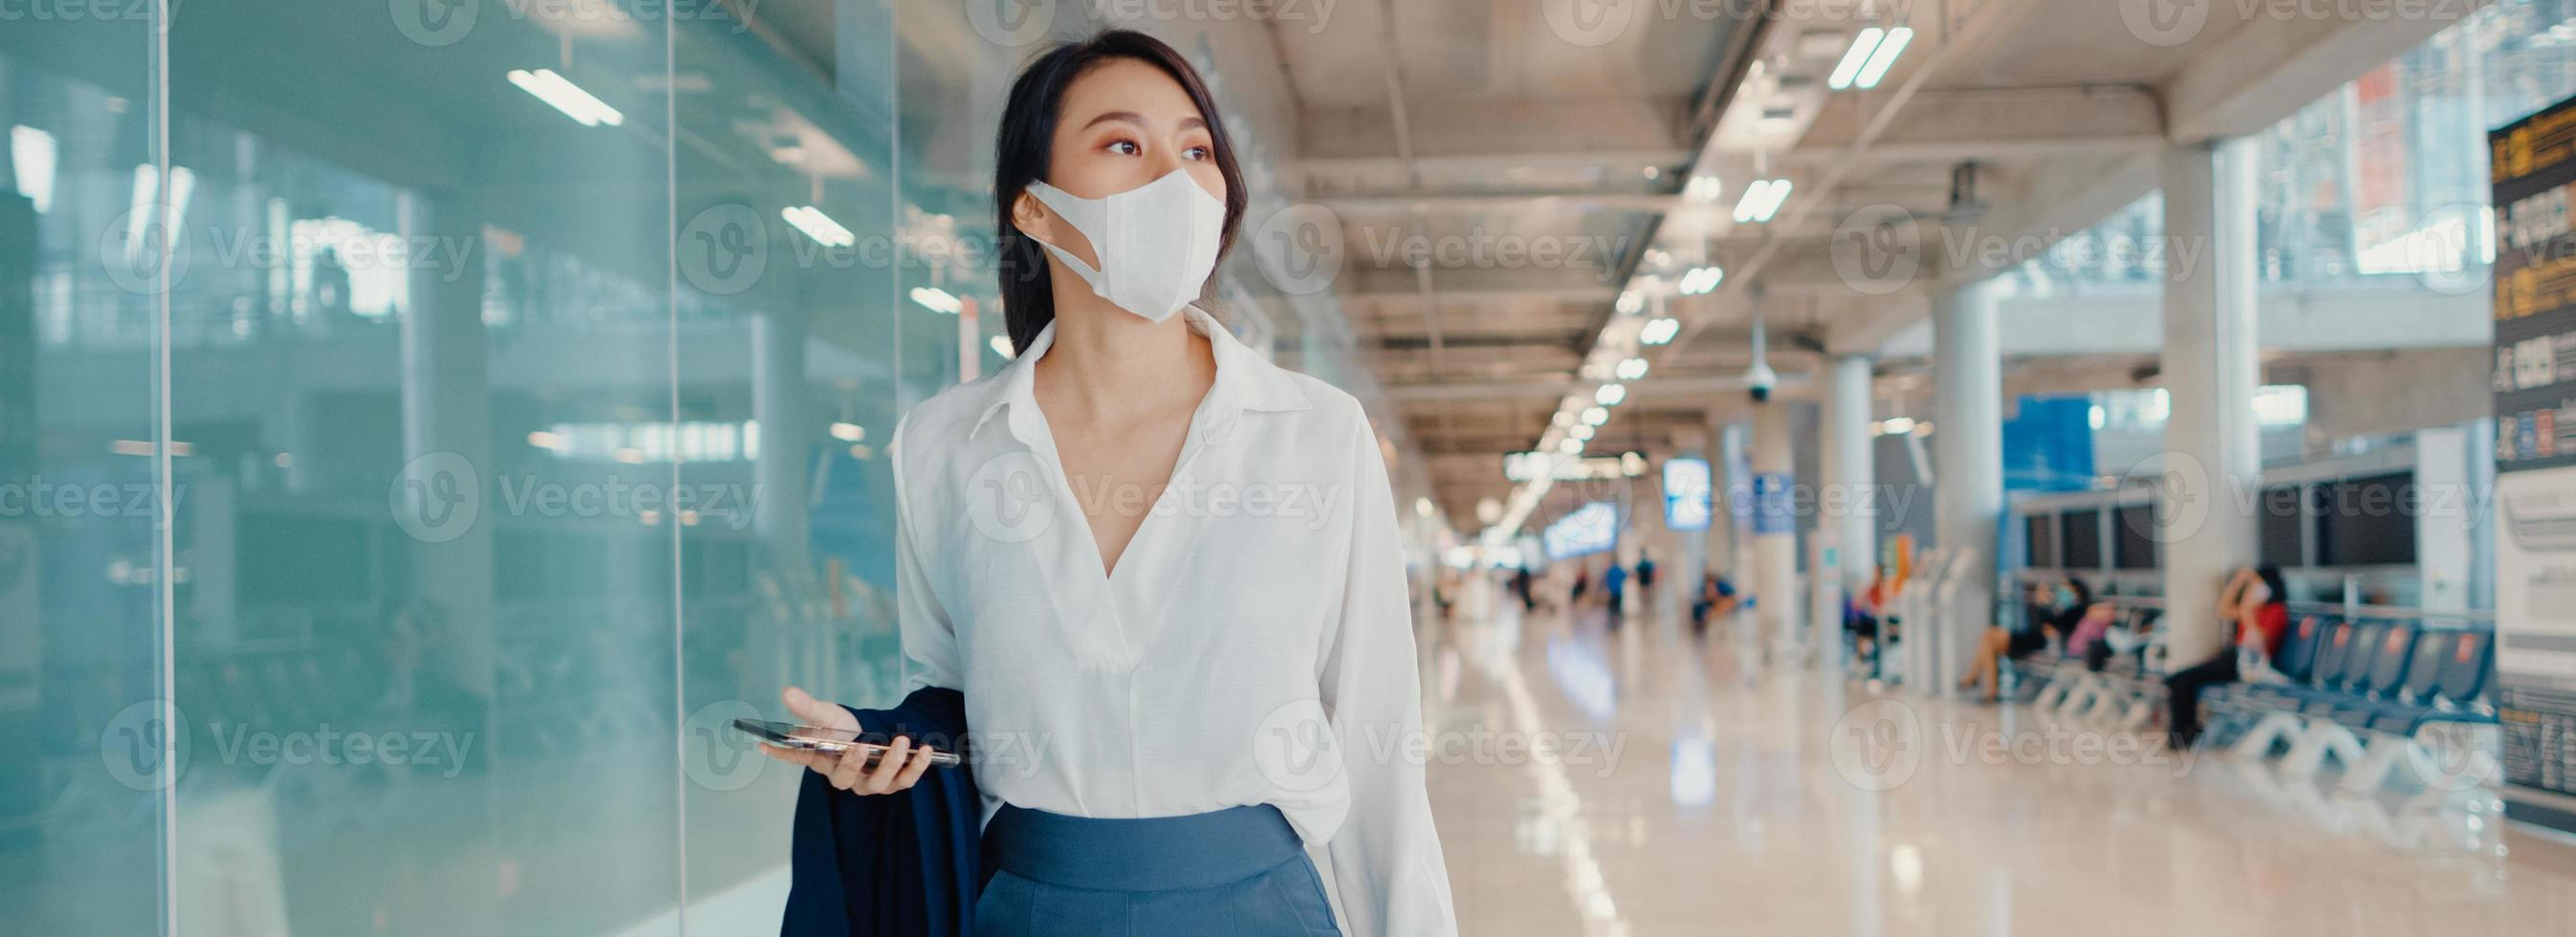 Asian business girl use smart phone for check in boarding pass walk with luggage to terminal domestic flight at airport. Business commuter covid pandemic, panoramic banner background with copy space. photo